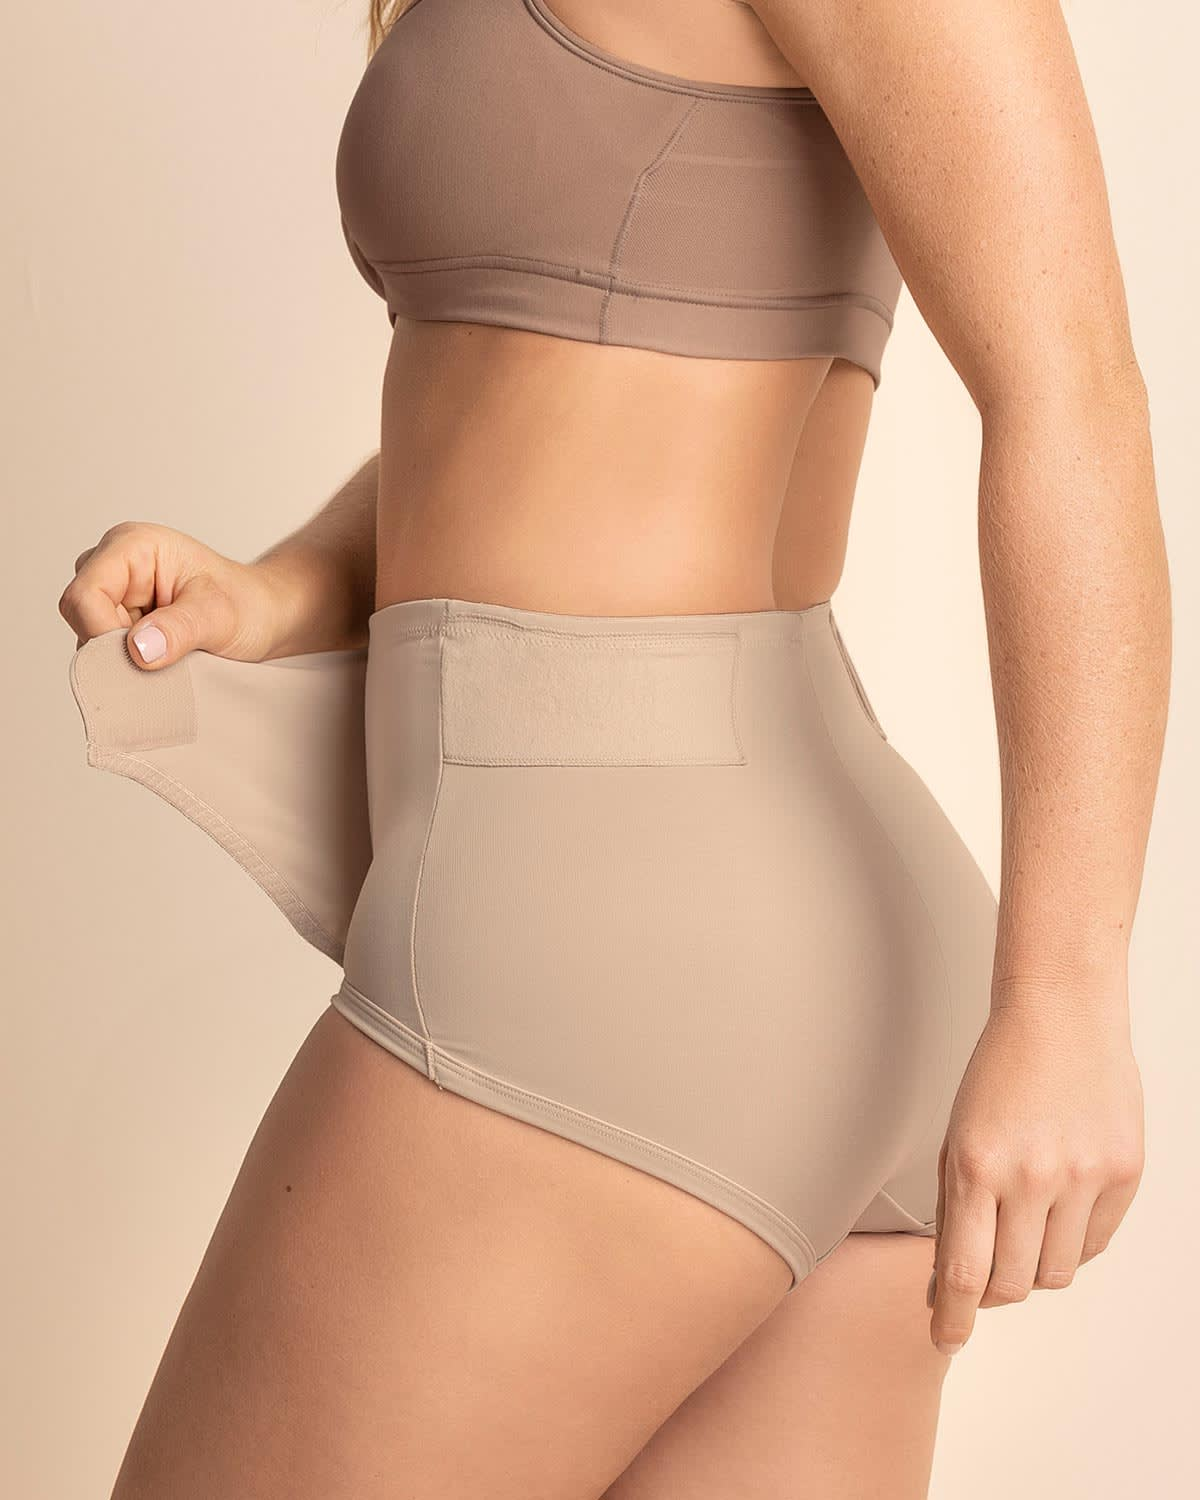 Firm Compression Postpartum Panty with Adjustable Belly Wrap - Doctor Recommended